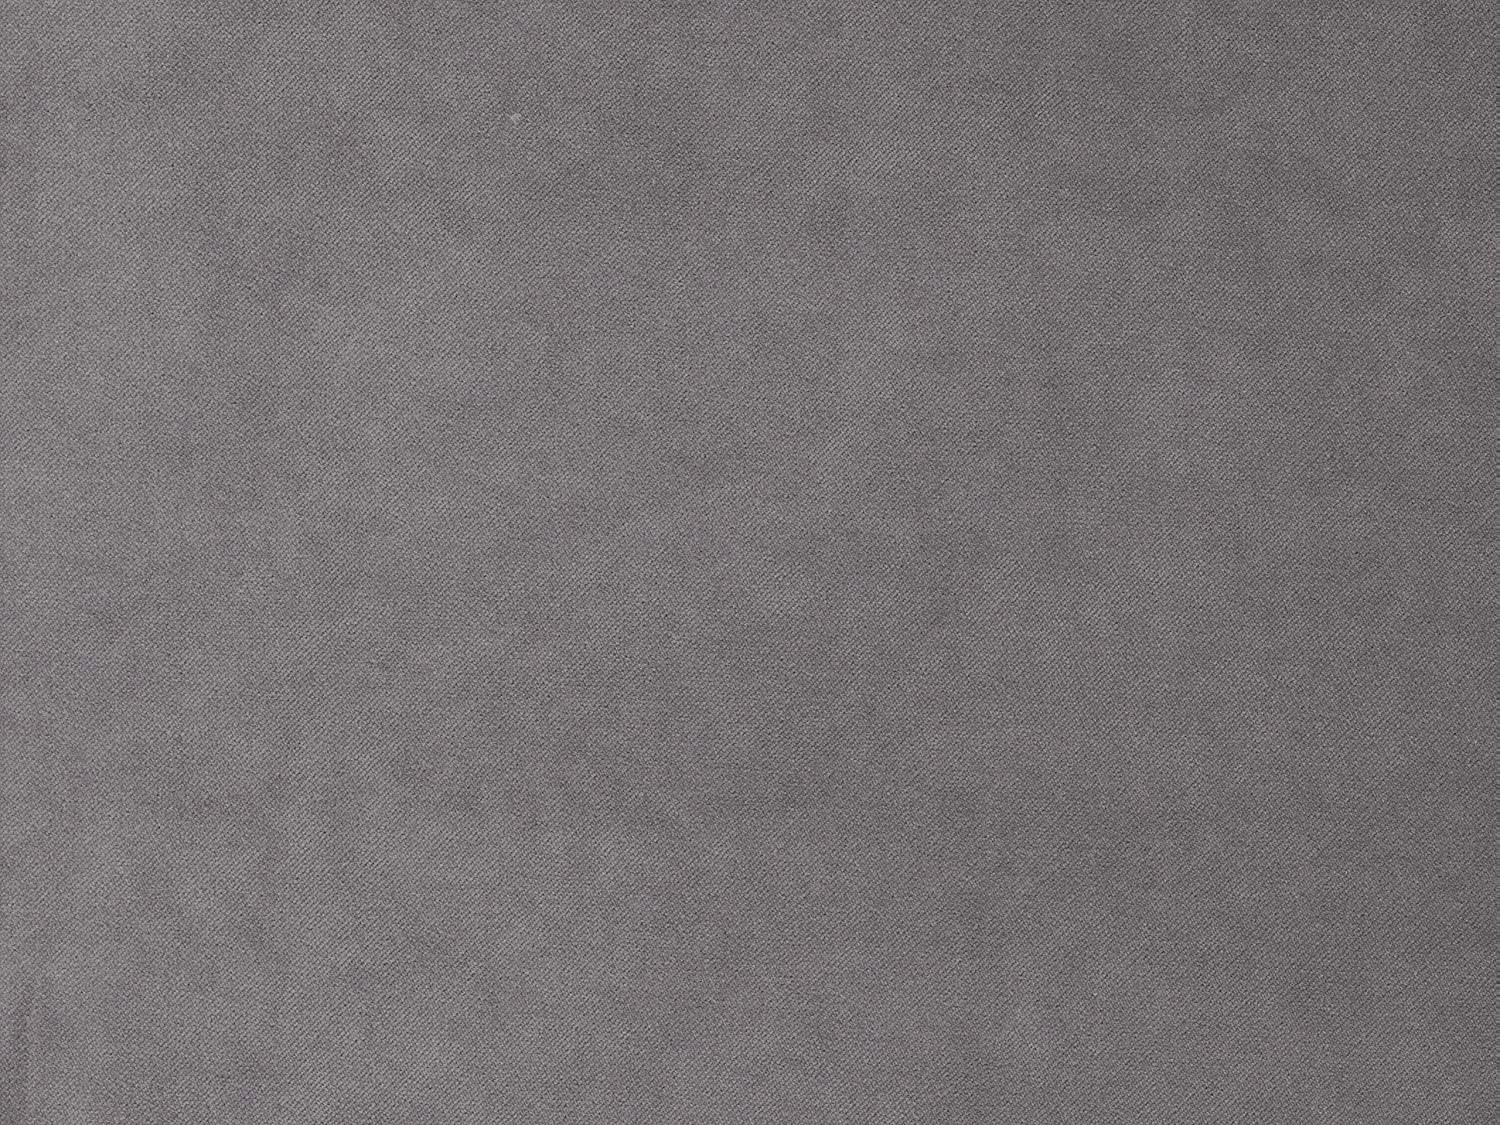 Amazon.com: Bellagio 13 Mist Velvet Upholstery Fabric by The ...